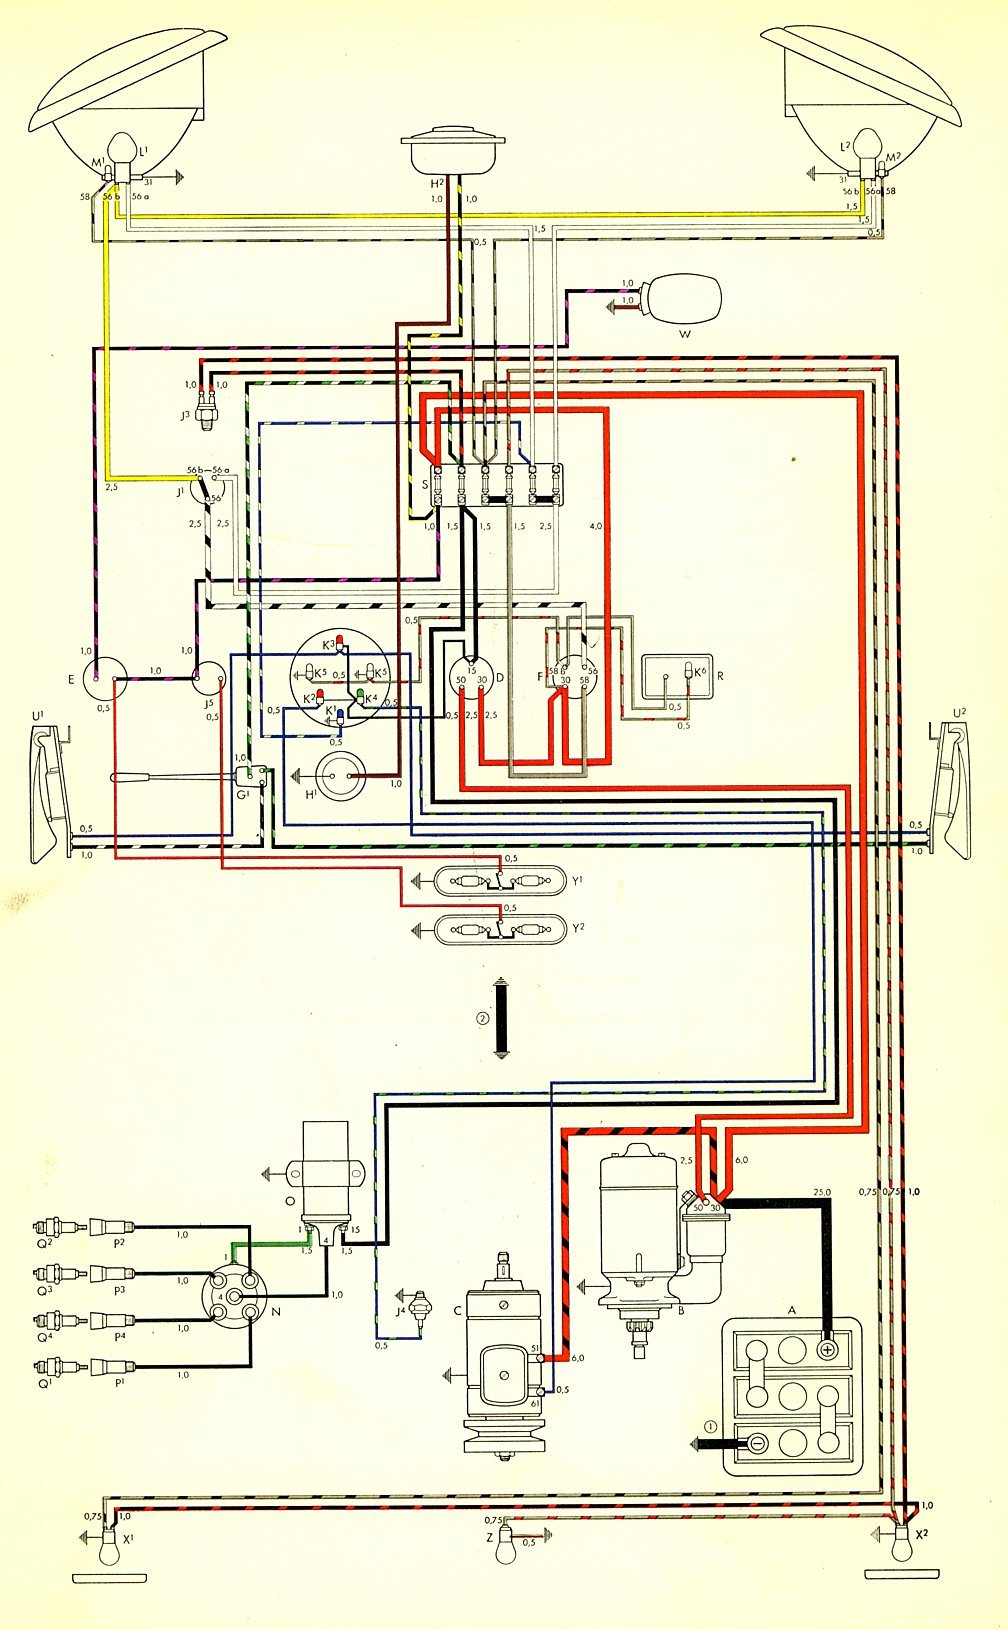 thesamba com type 2 wiring diagrams rh thesamba com 1965 VW Wiring Diagram 1973 VW Wiring Diagram